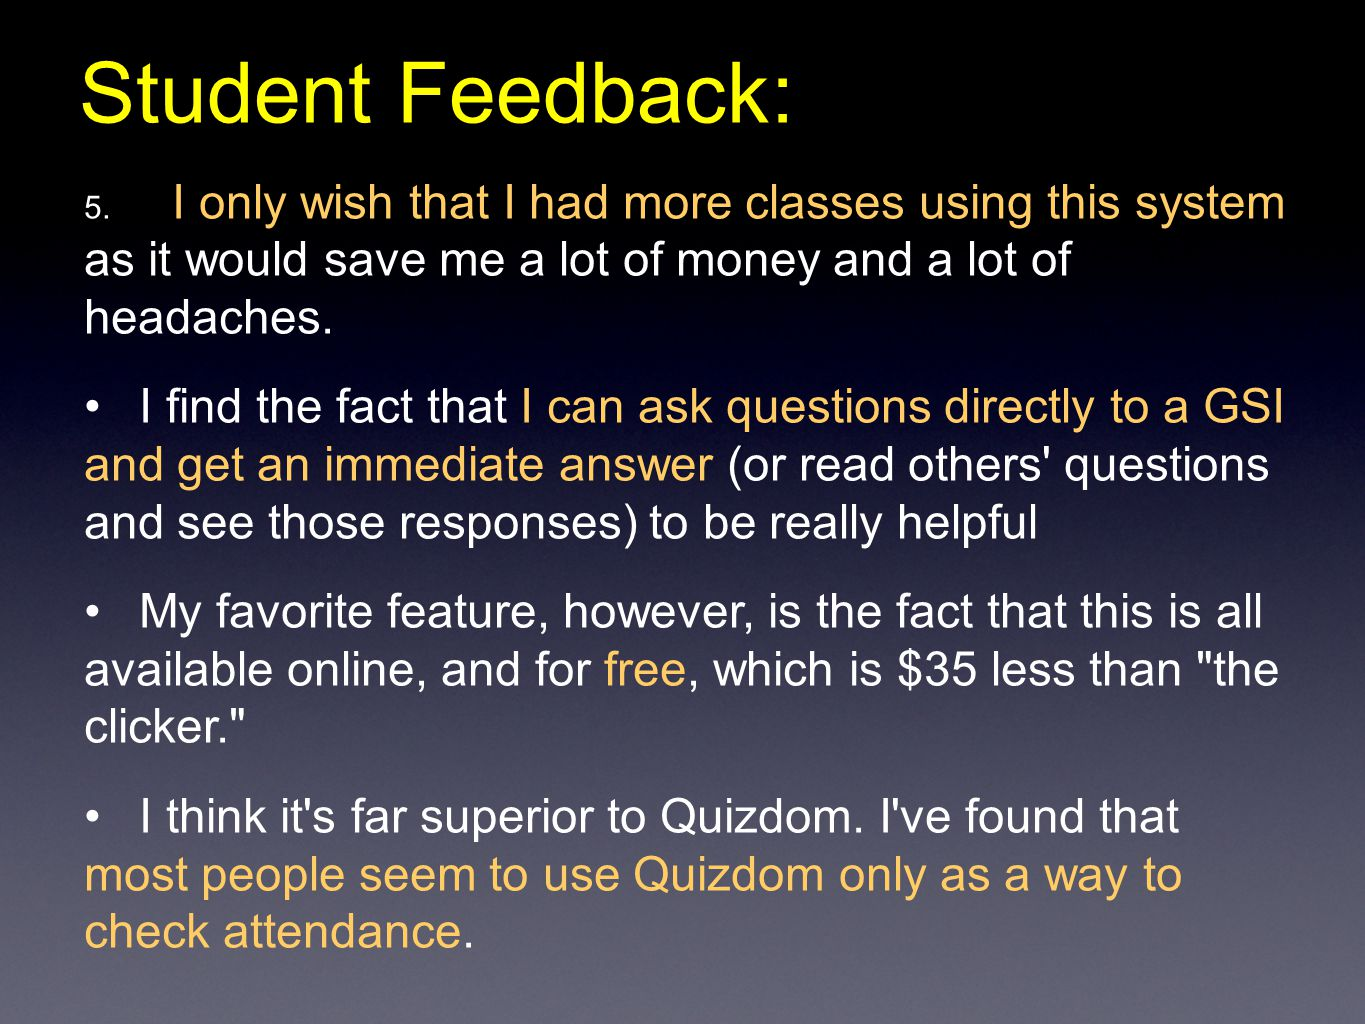 Student Feedback: 5. I only wish that I had more classes using this system as it would save me a lot of money and a lot of headaches. I find the fact